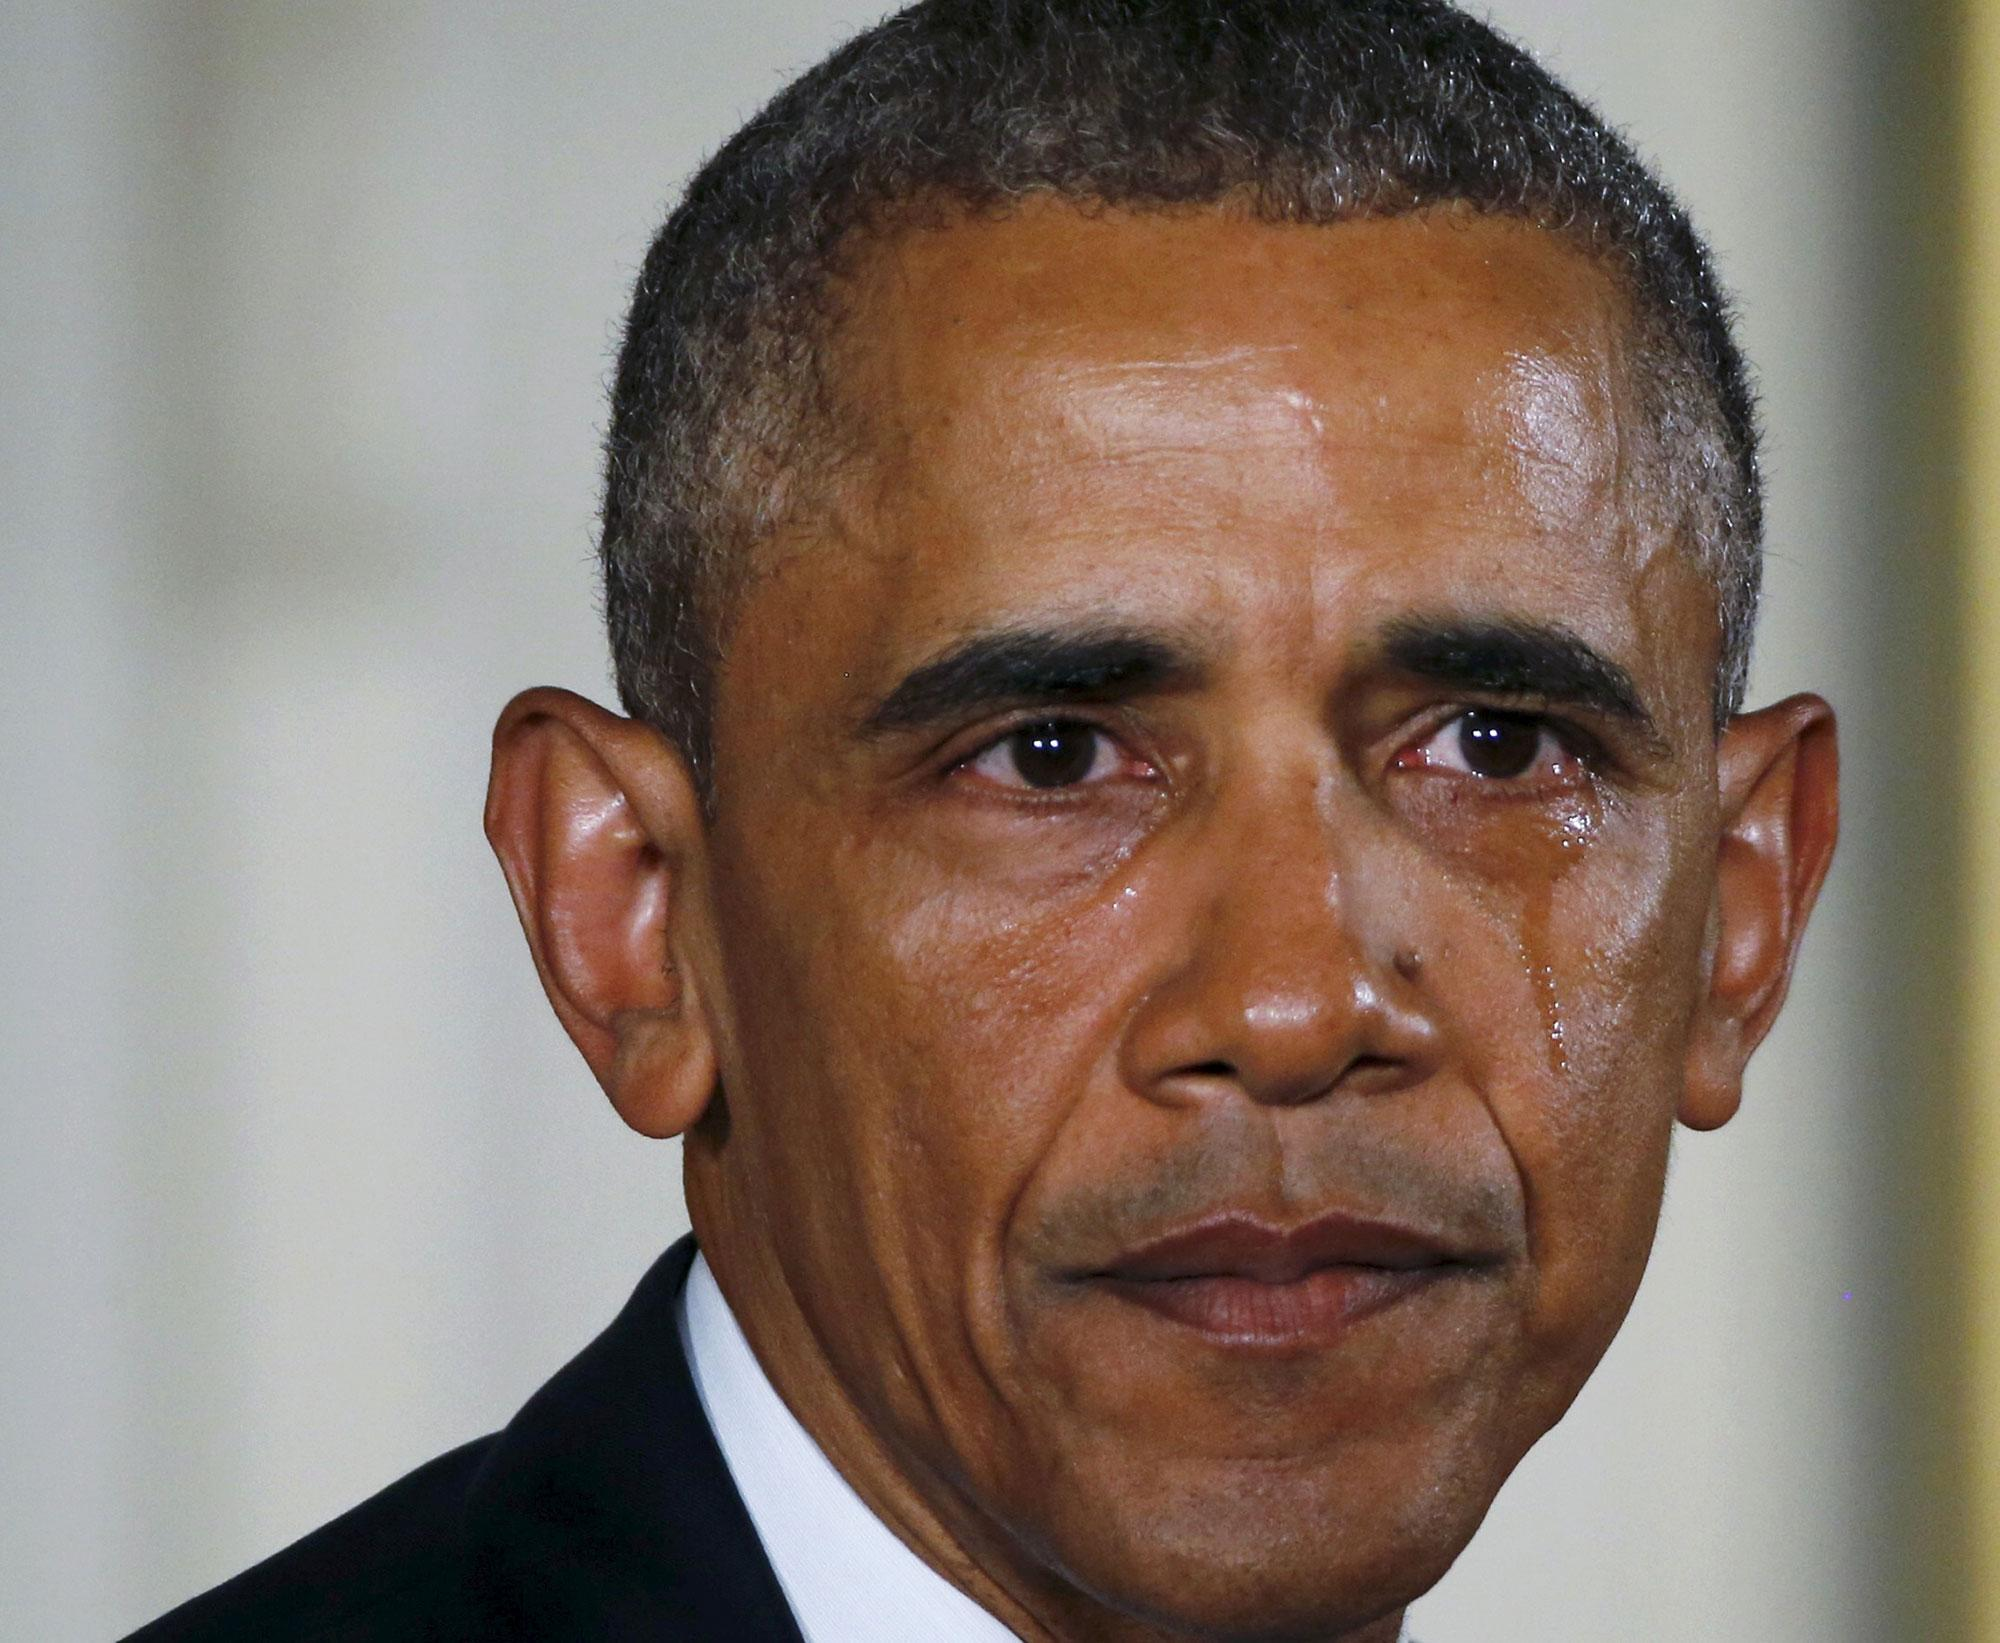 <p>JAN. 5, 2016 — U.S. President Barack Obama sheds a tear while delivering a statement on steps the administration is taking to reduce gun violence in the East Room of the White House in Washington. (Carlos Barria/Reuters) </p>